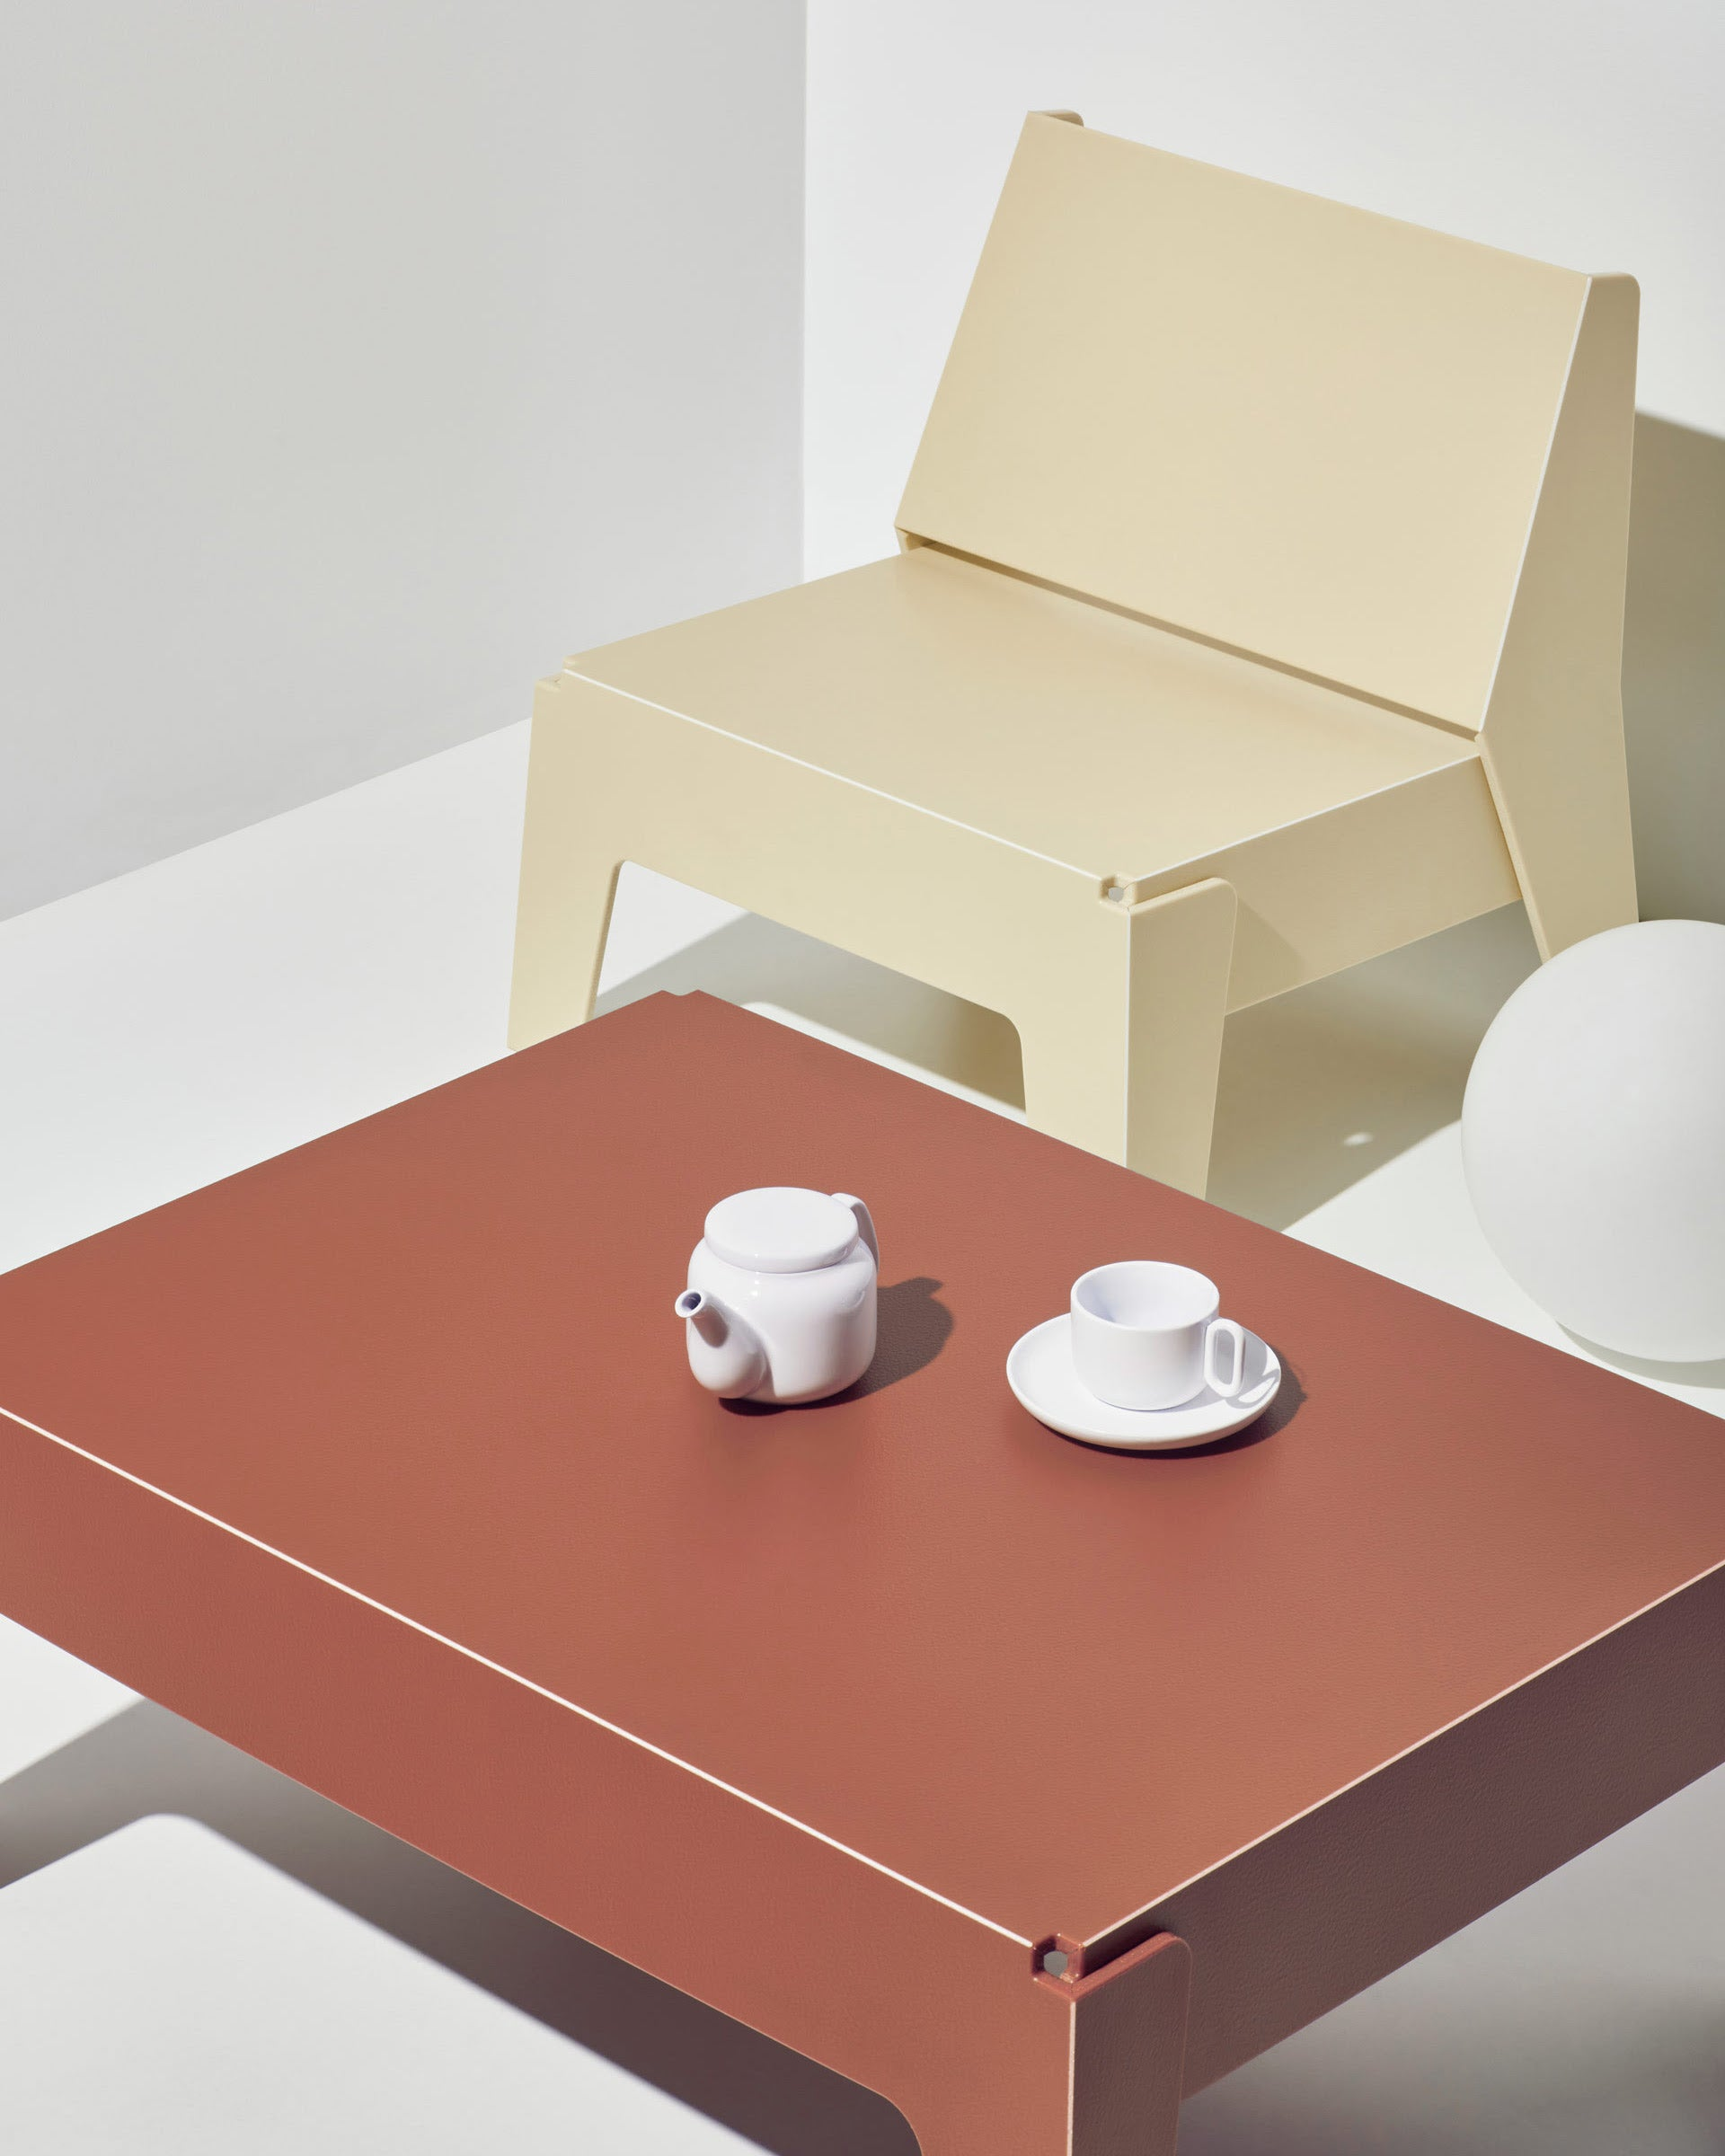 Butter Seat and Coffee Table   Recycled Plastic Furniture   Indoor Outdoor Waterproof   Gibson Karlo   DesignByThem